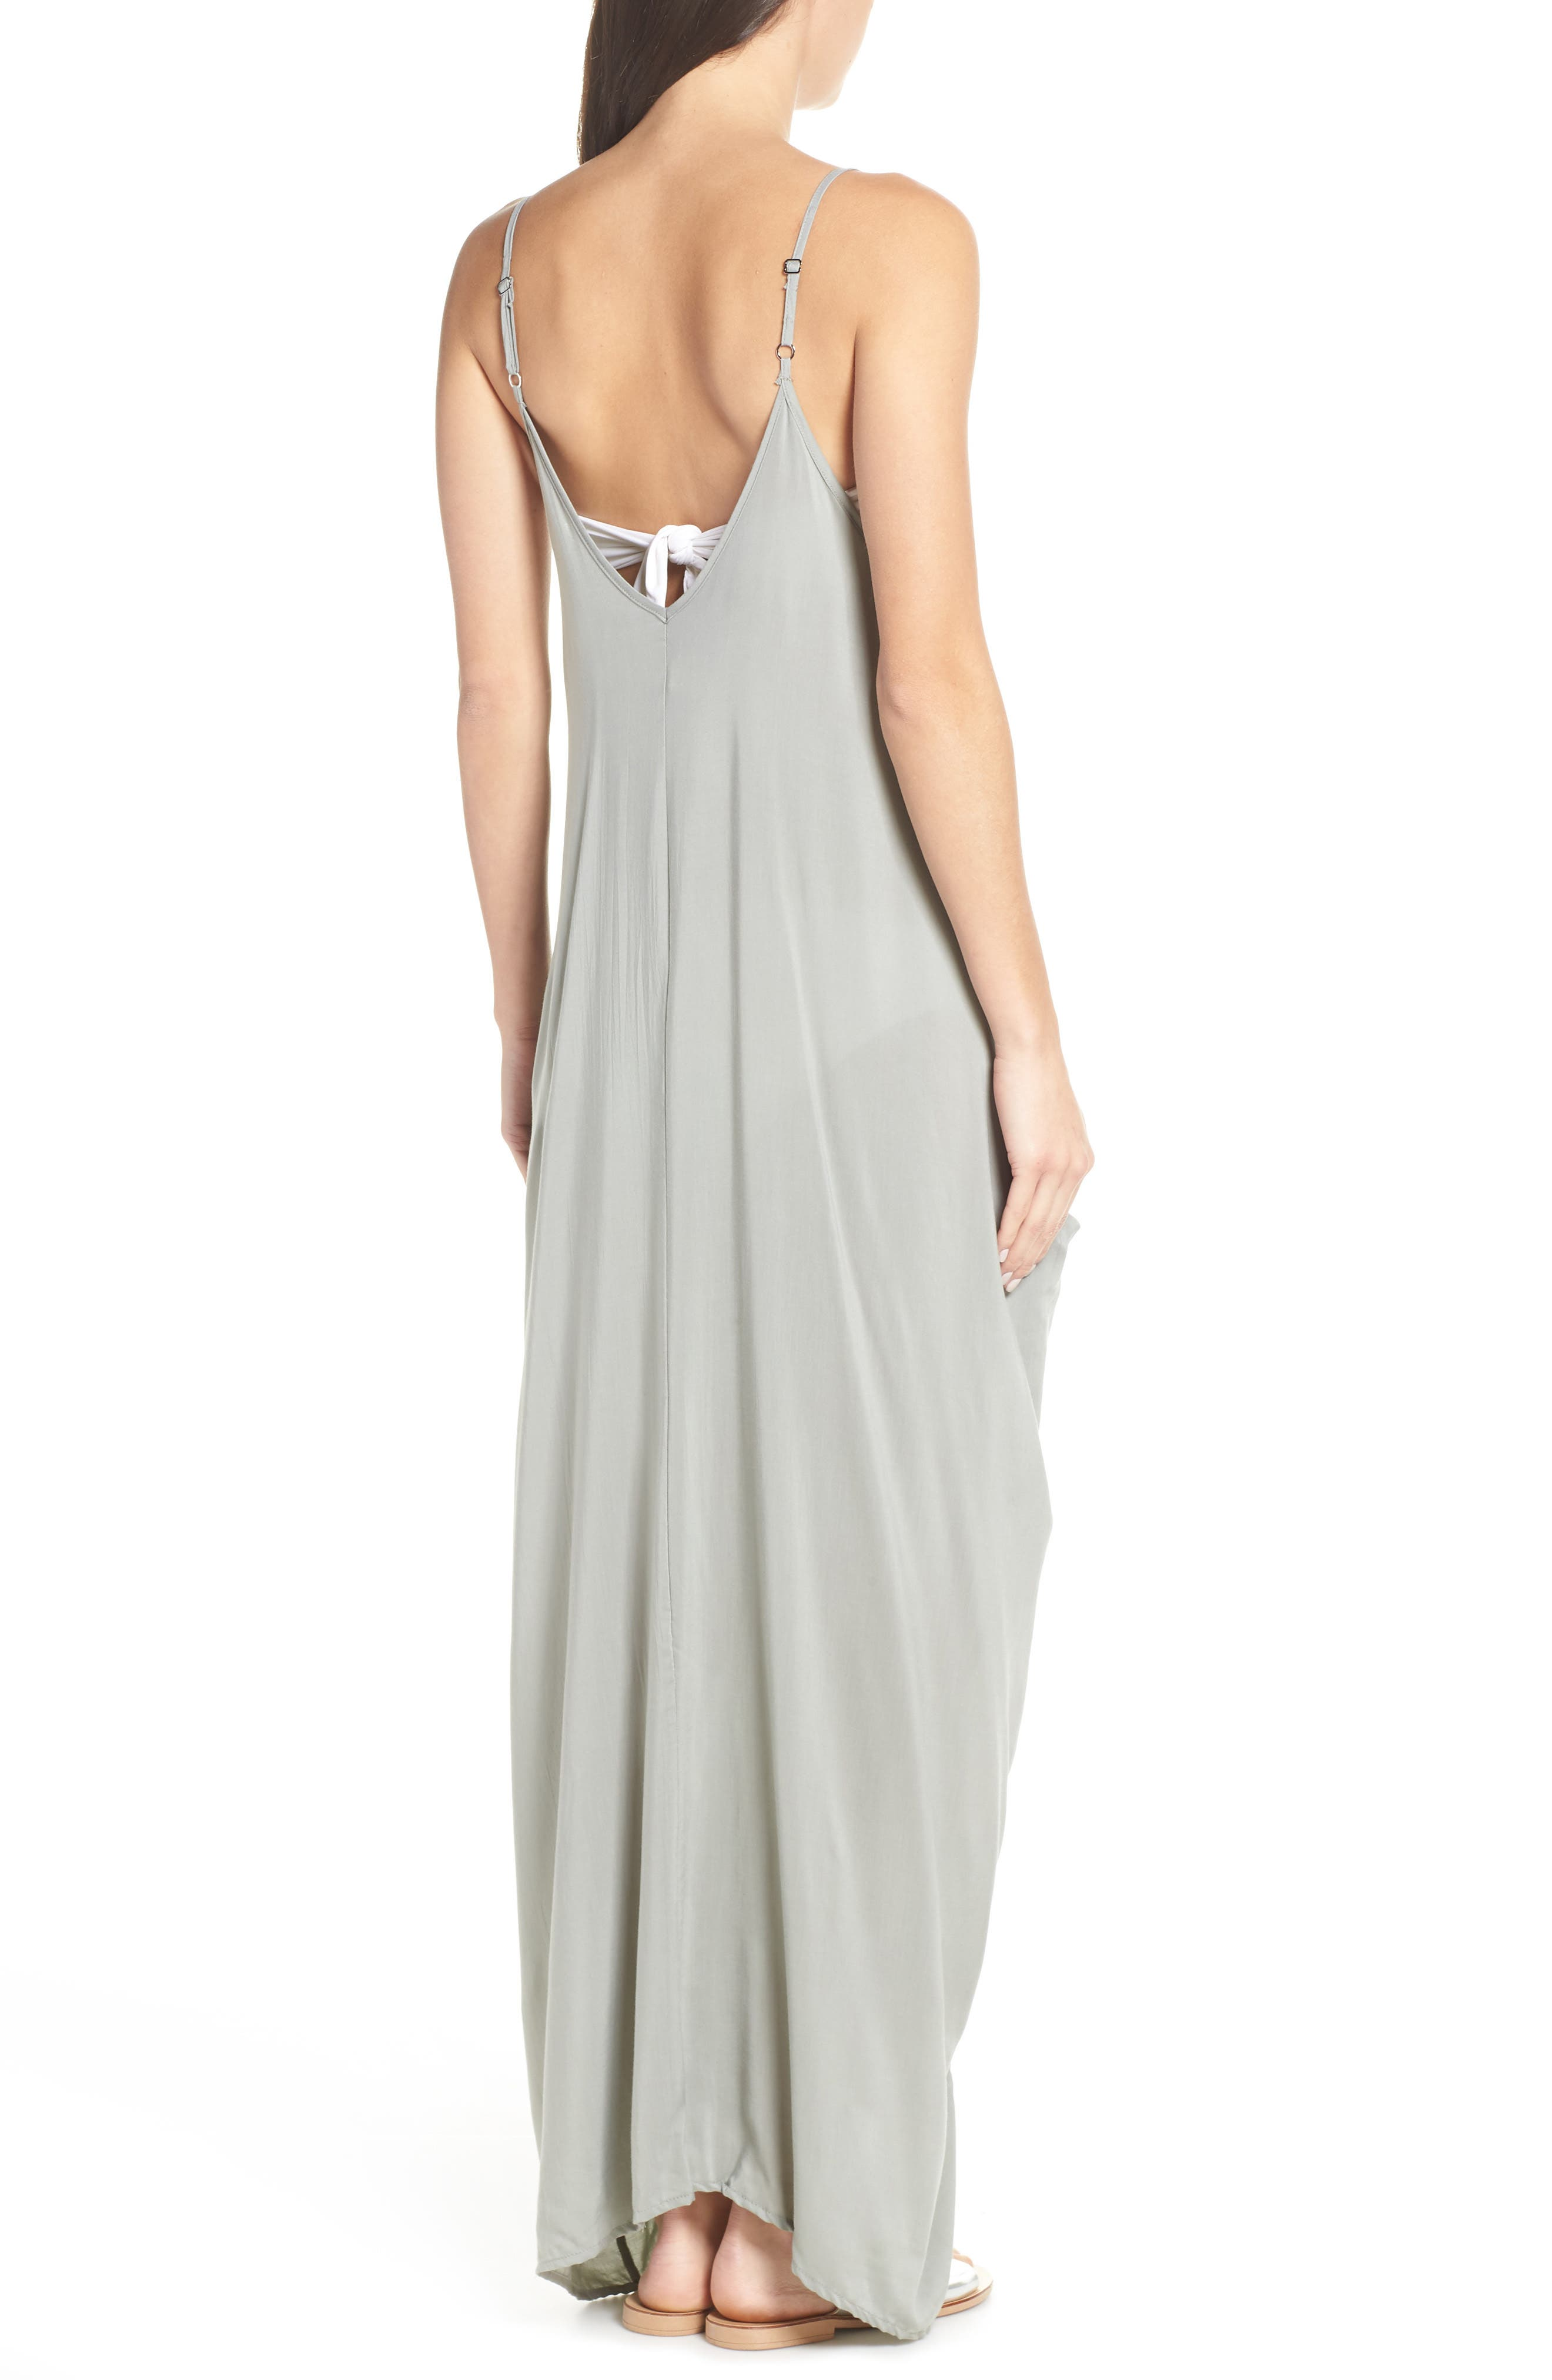 ELAN,                             V-Back Cover-Up Maxi Dress,                             Alternate thumbnail 2, color,                             SAGE